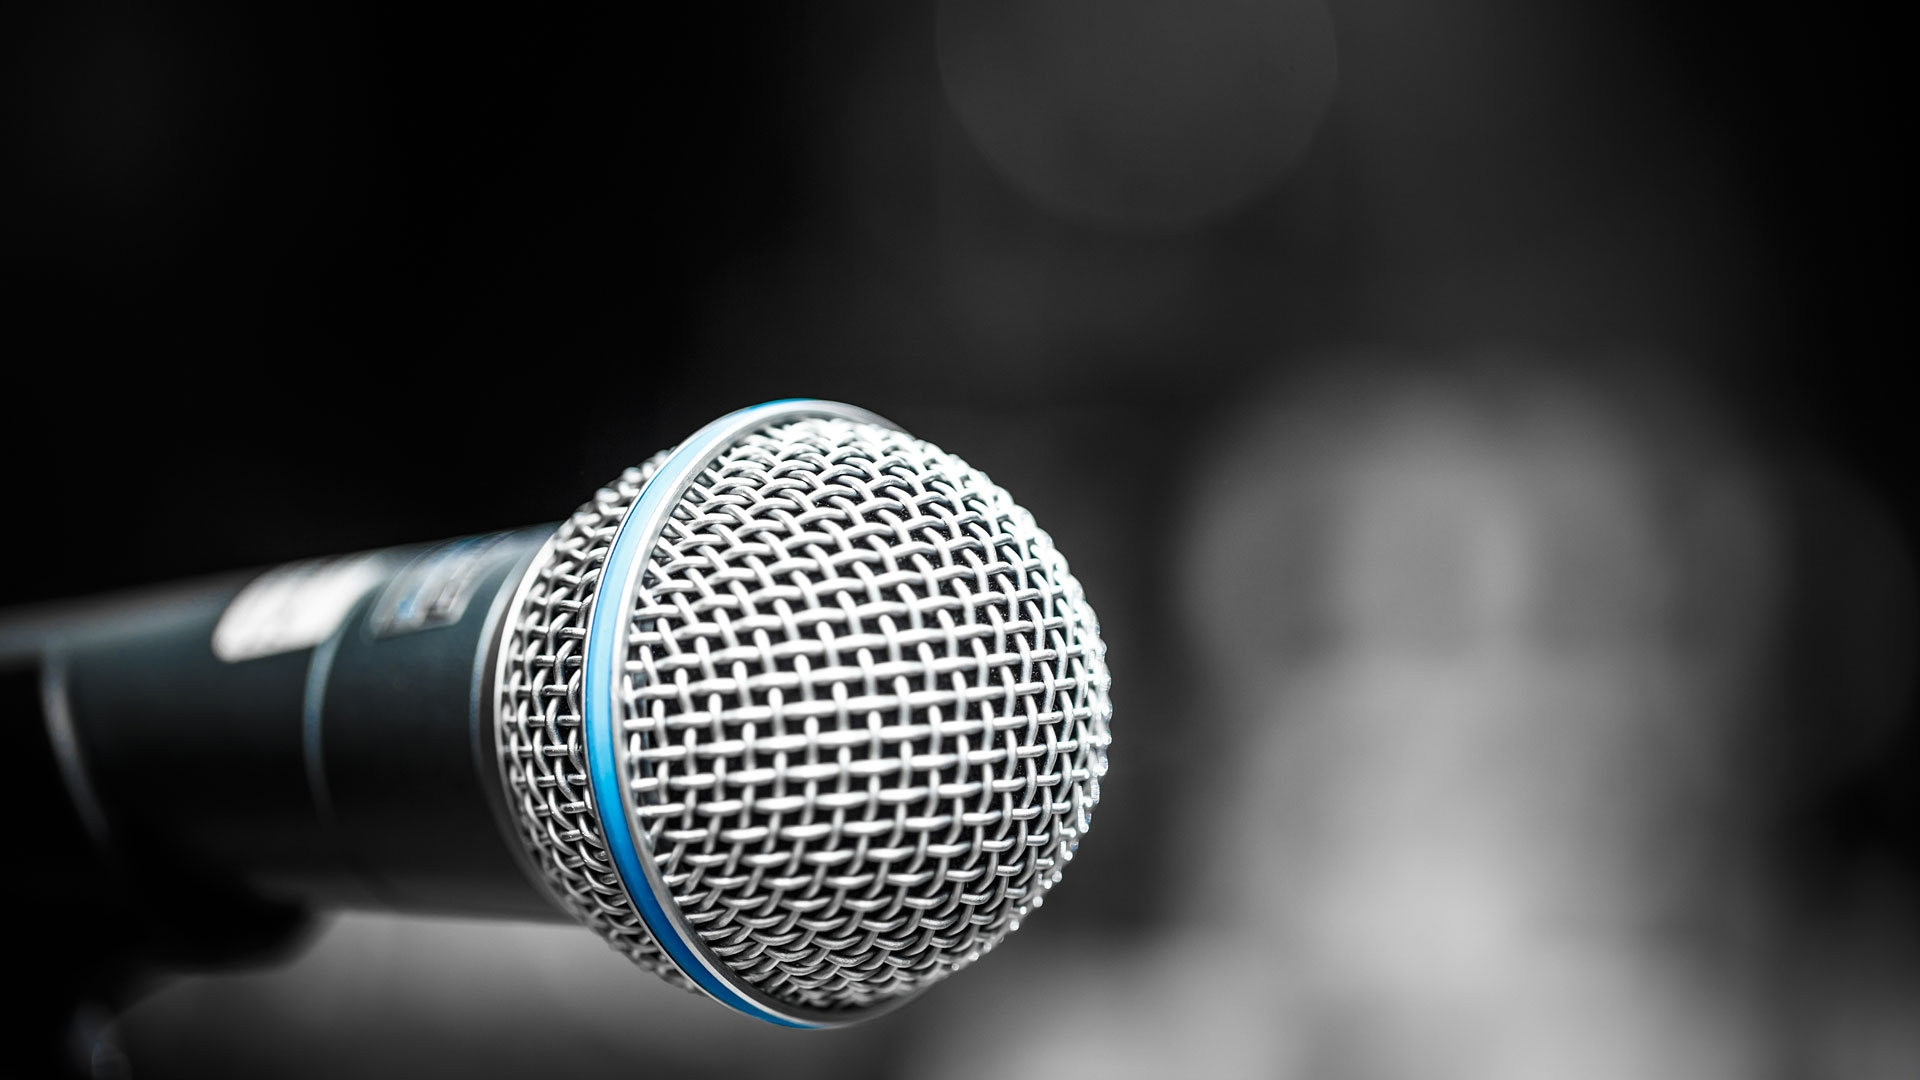 close-up-of-microphone-PWKEJH2.jpg